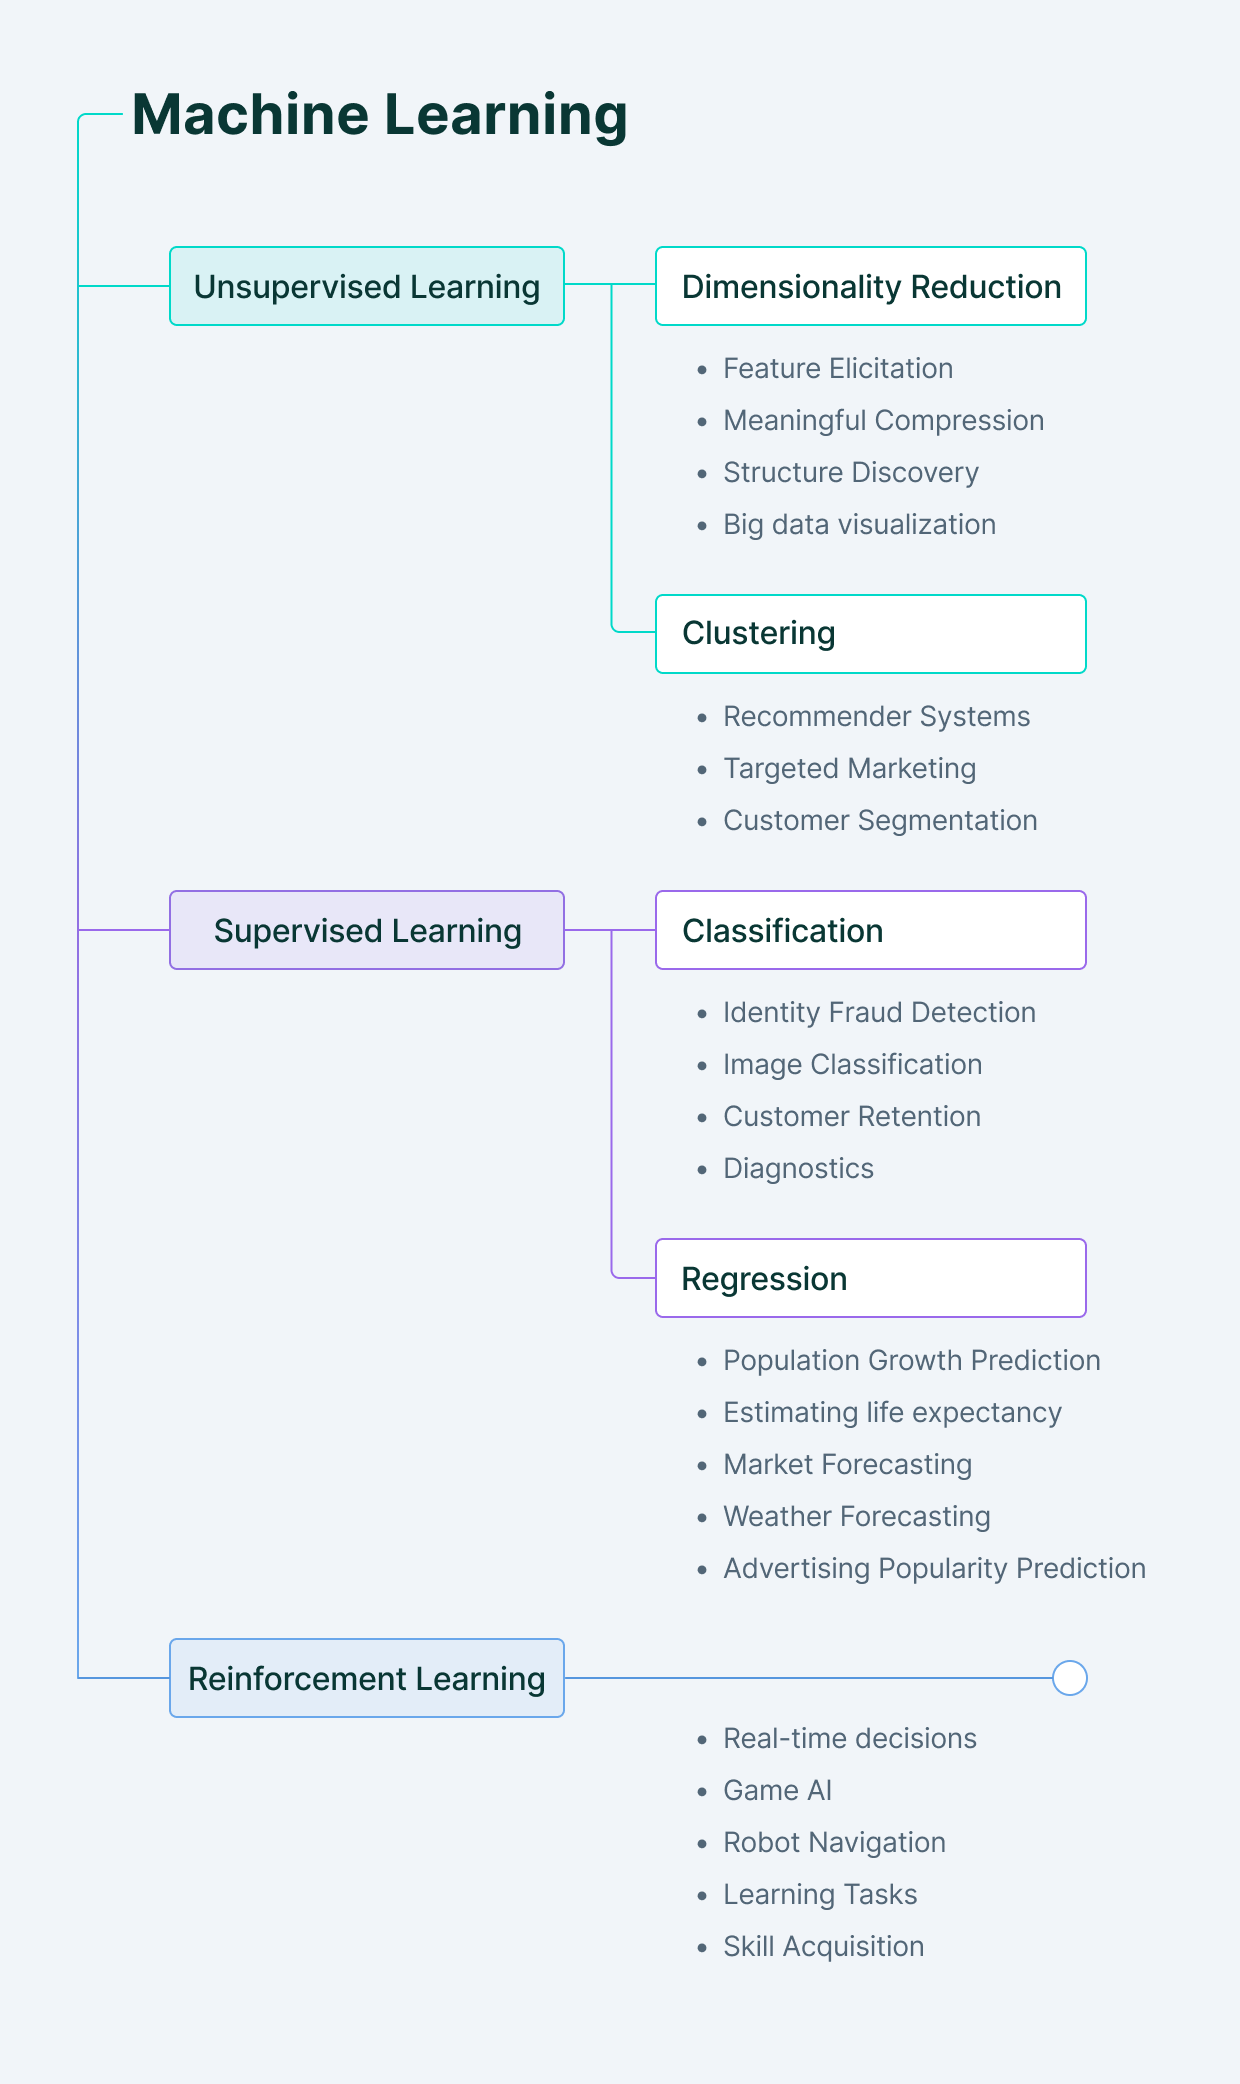 Types of learning in machine learning: unsupervised, supervised and reinforcement learning.